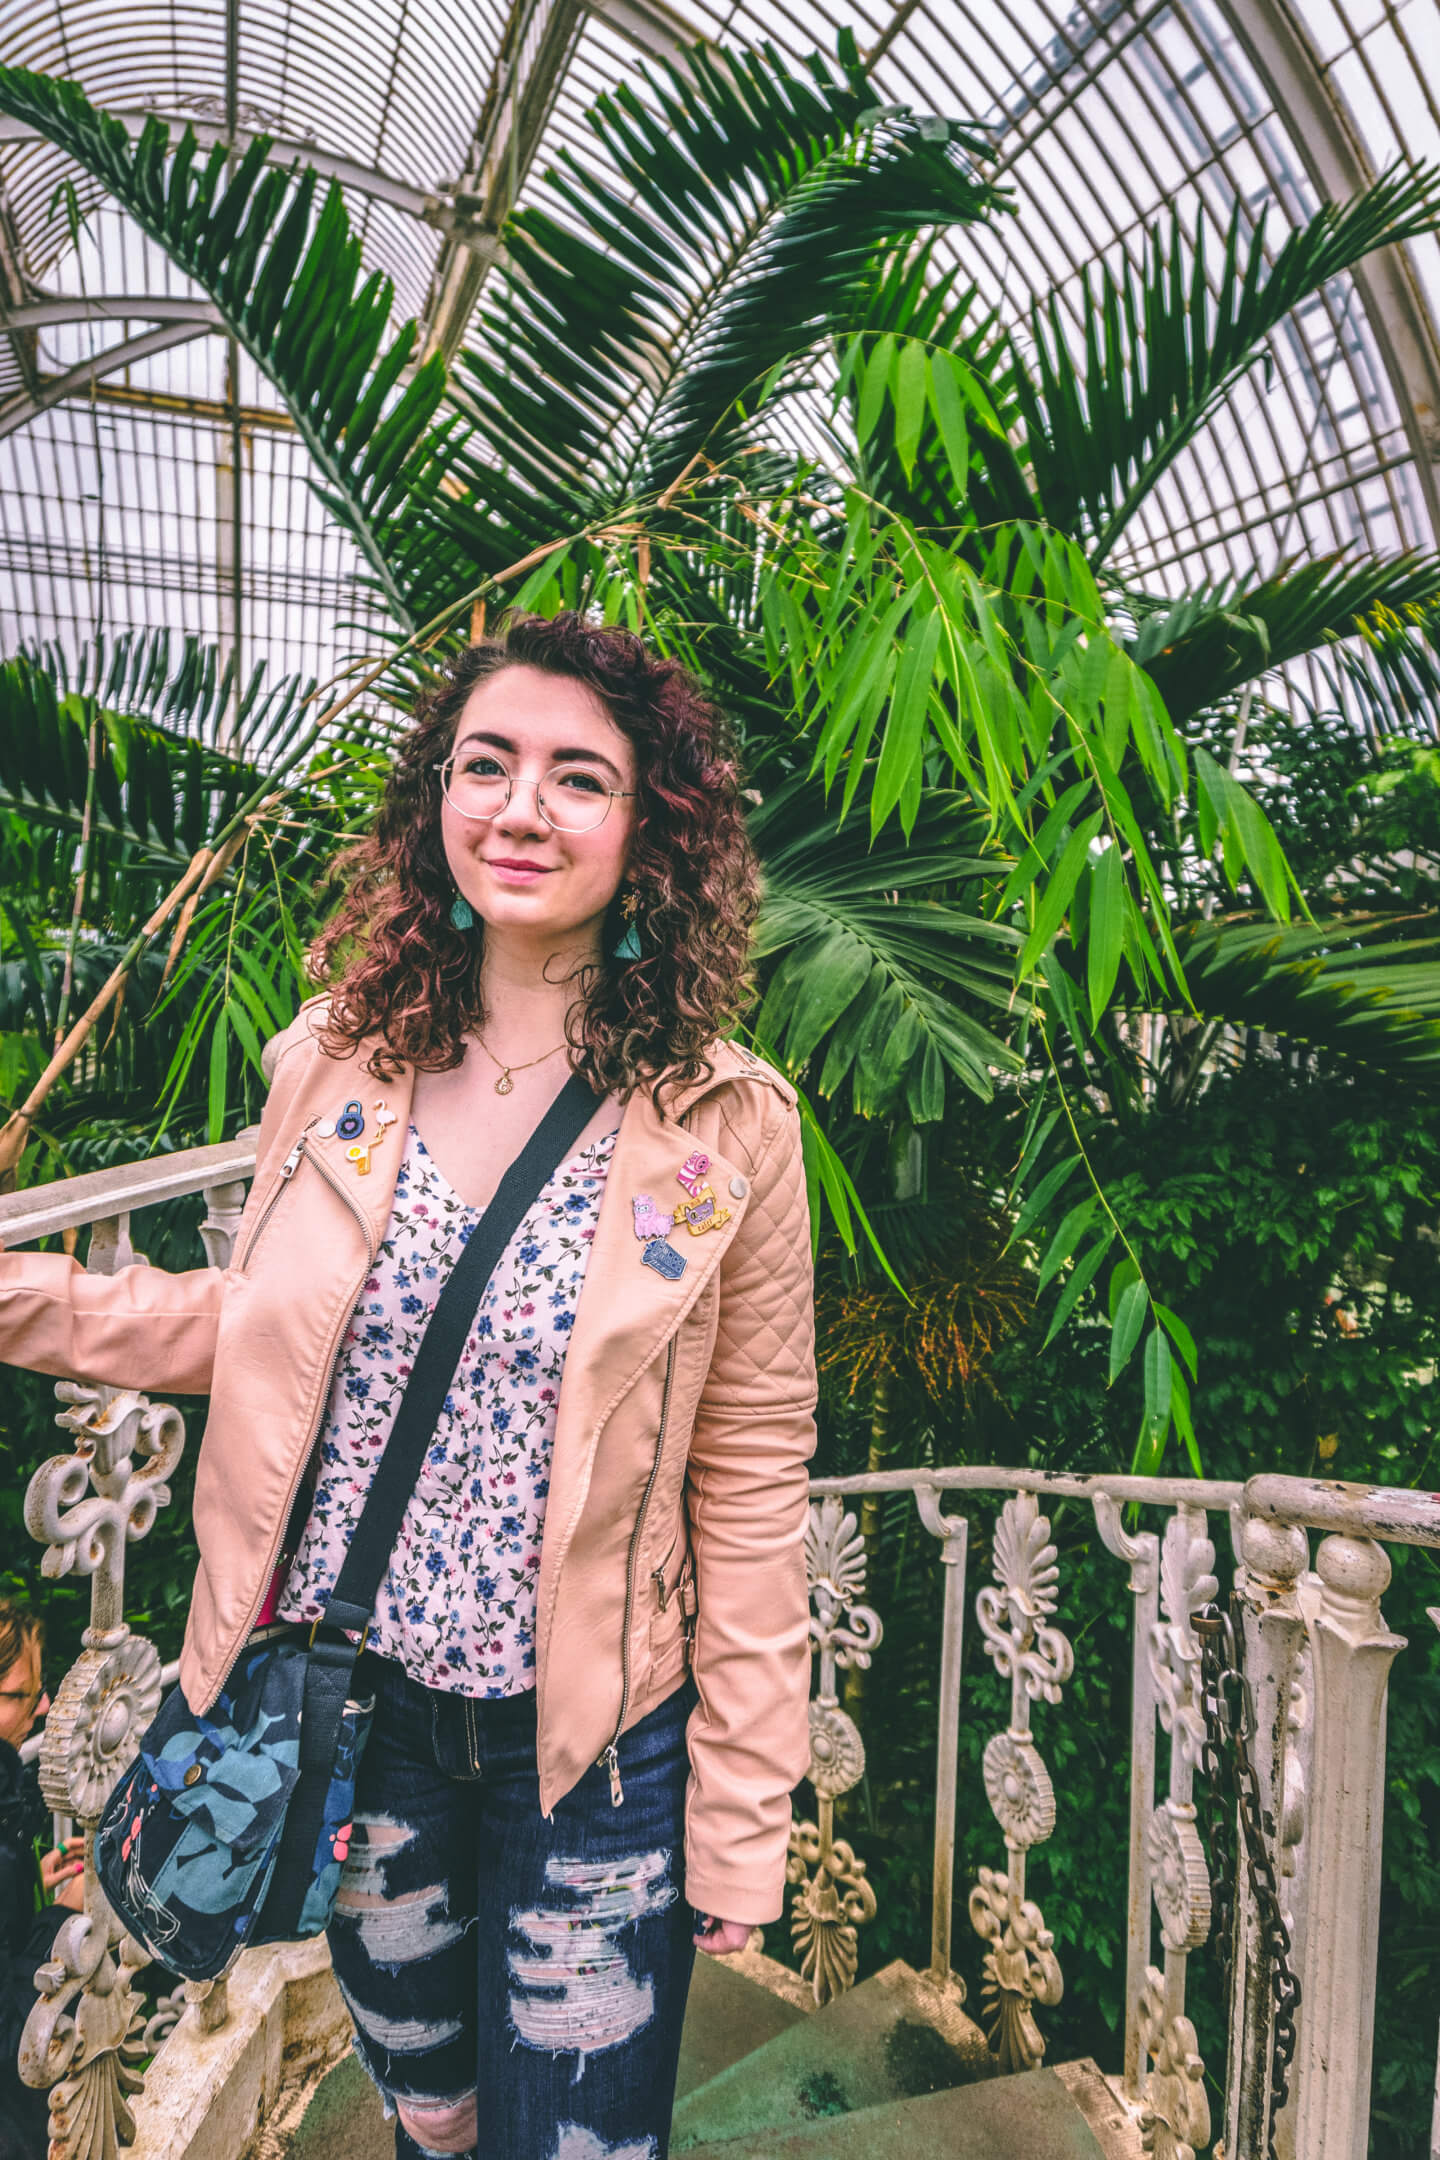 Standing inside the Palm House at Kew Gardens